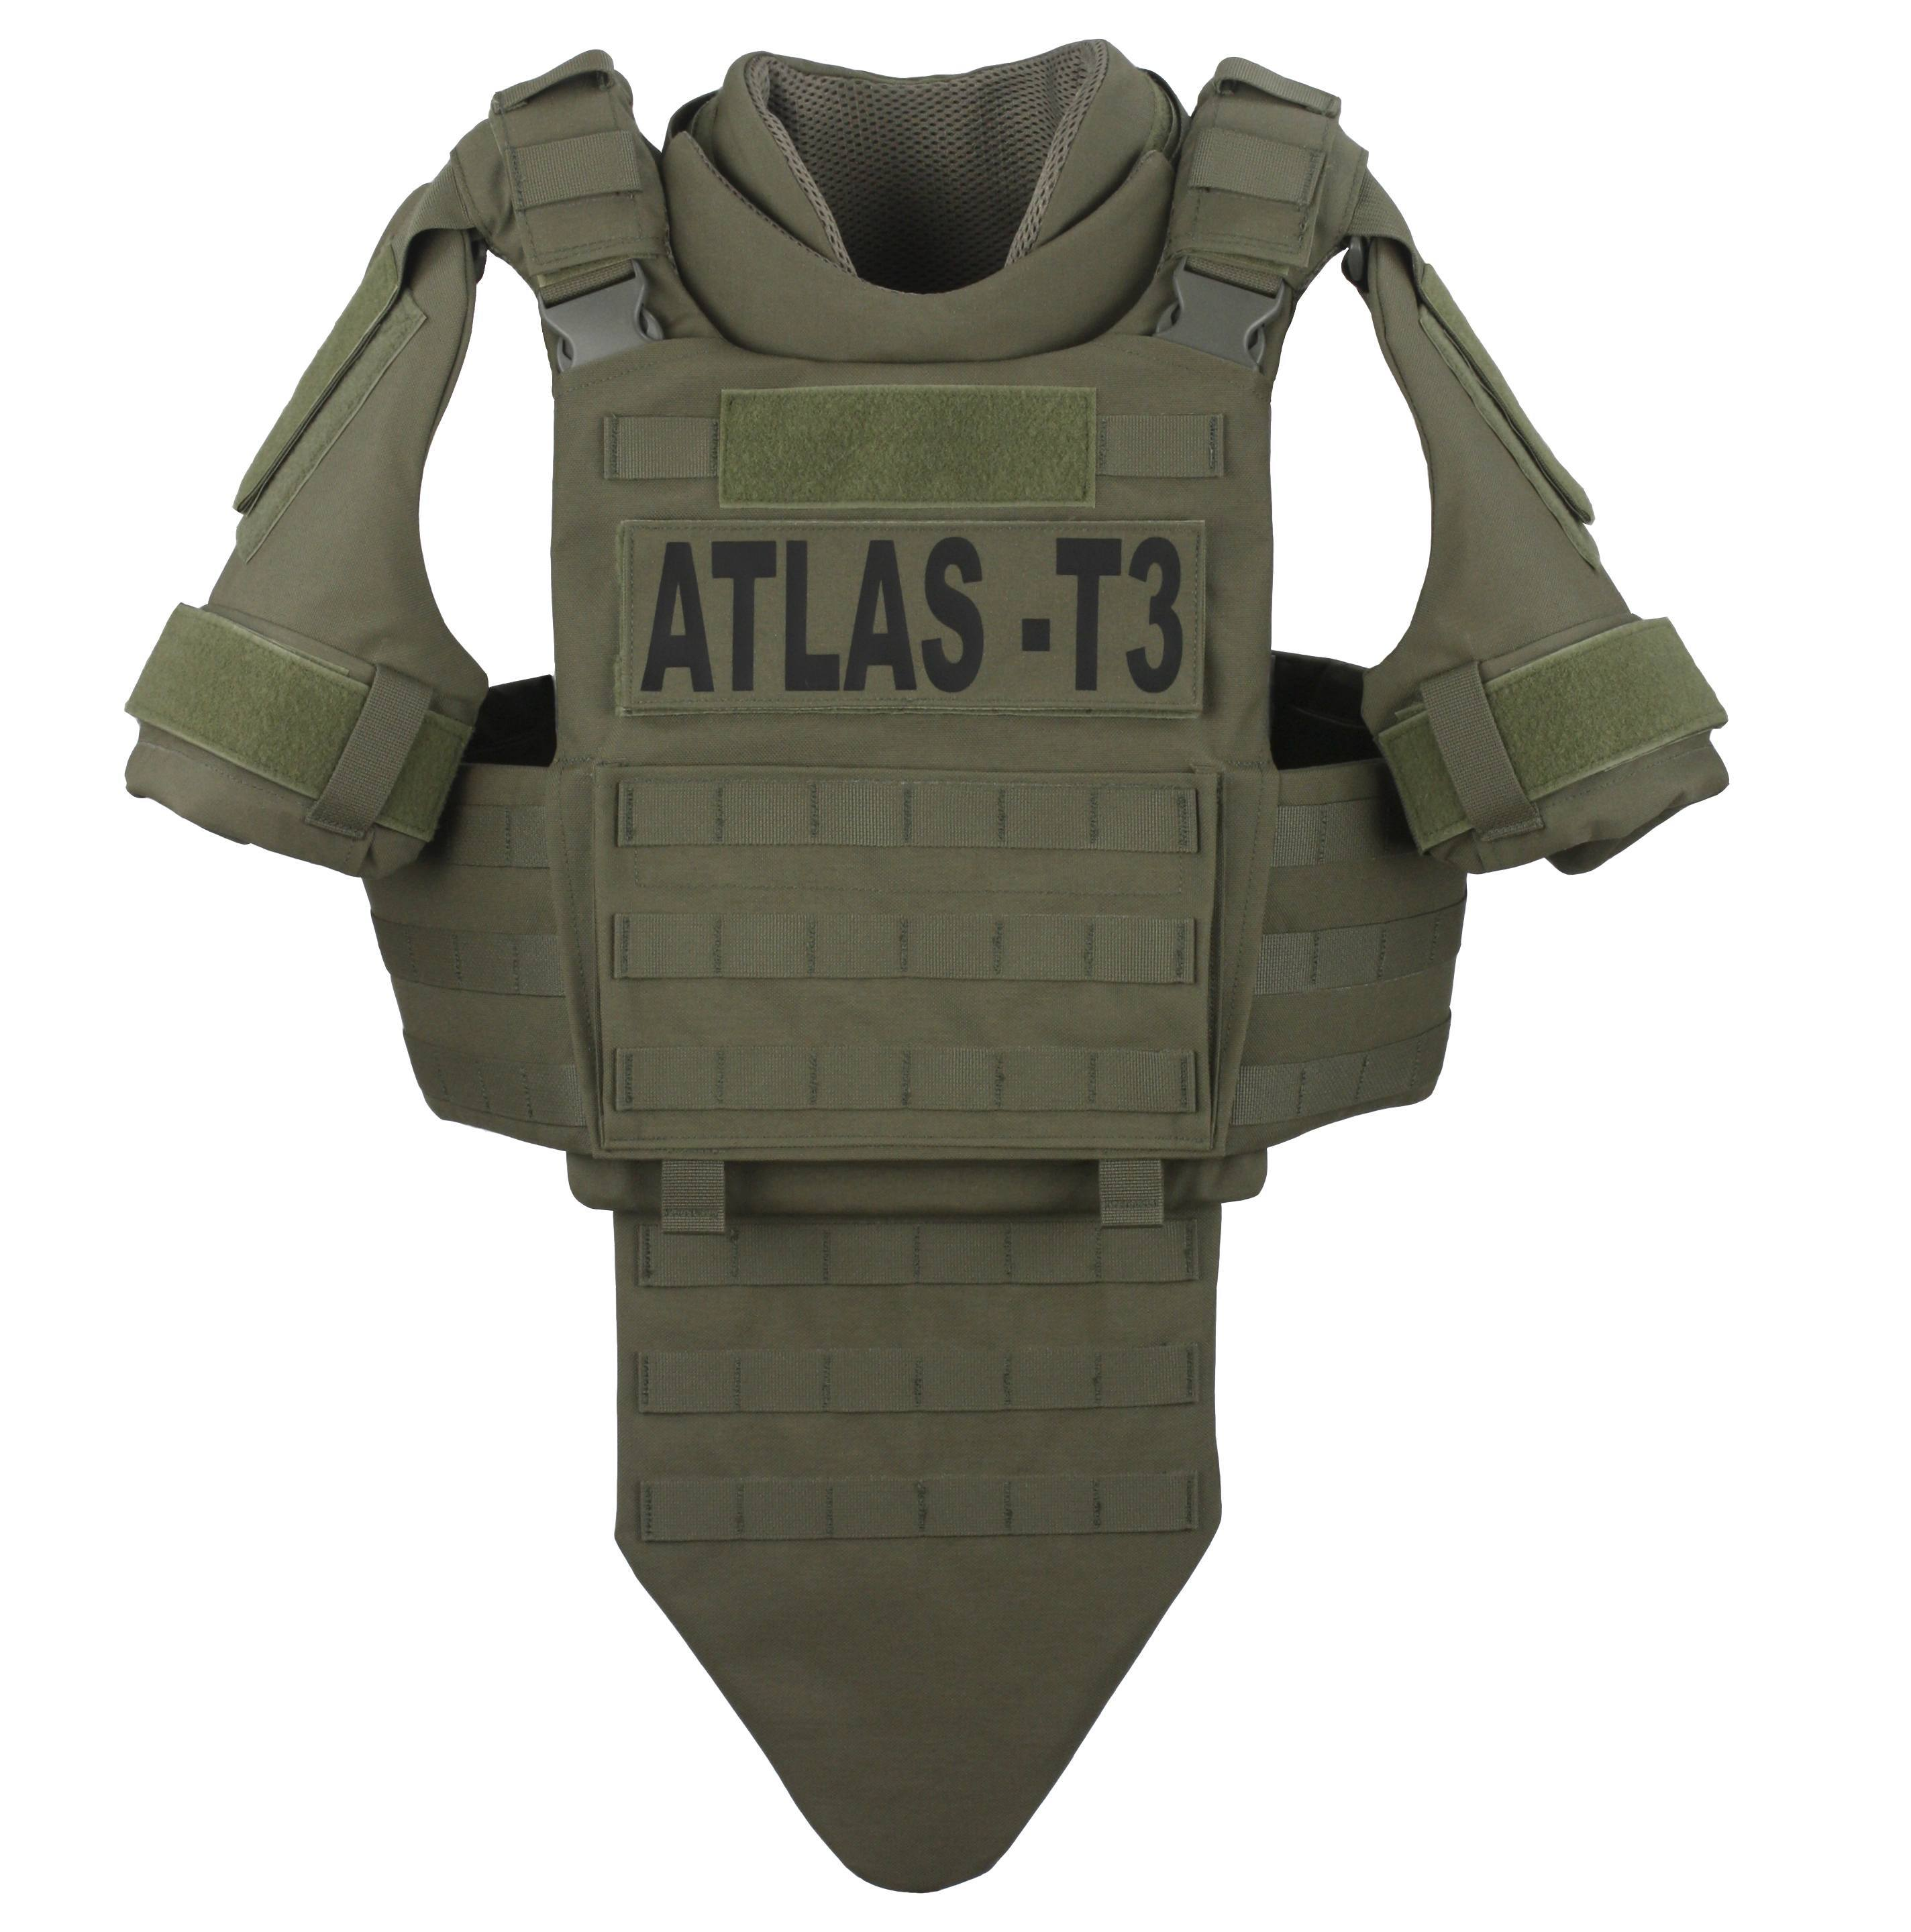 GH-AT3-VEST-LX3A Atlas T3 Ballistic Panels - LiteX IIIA-